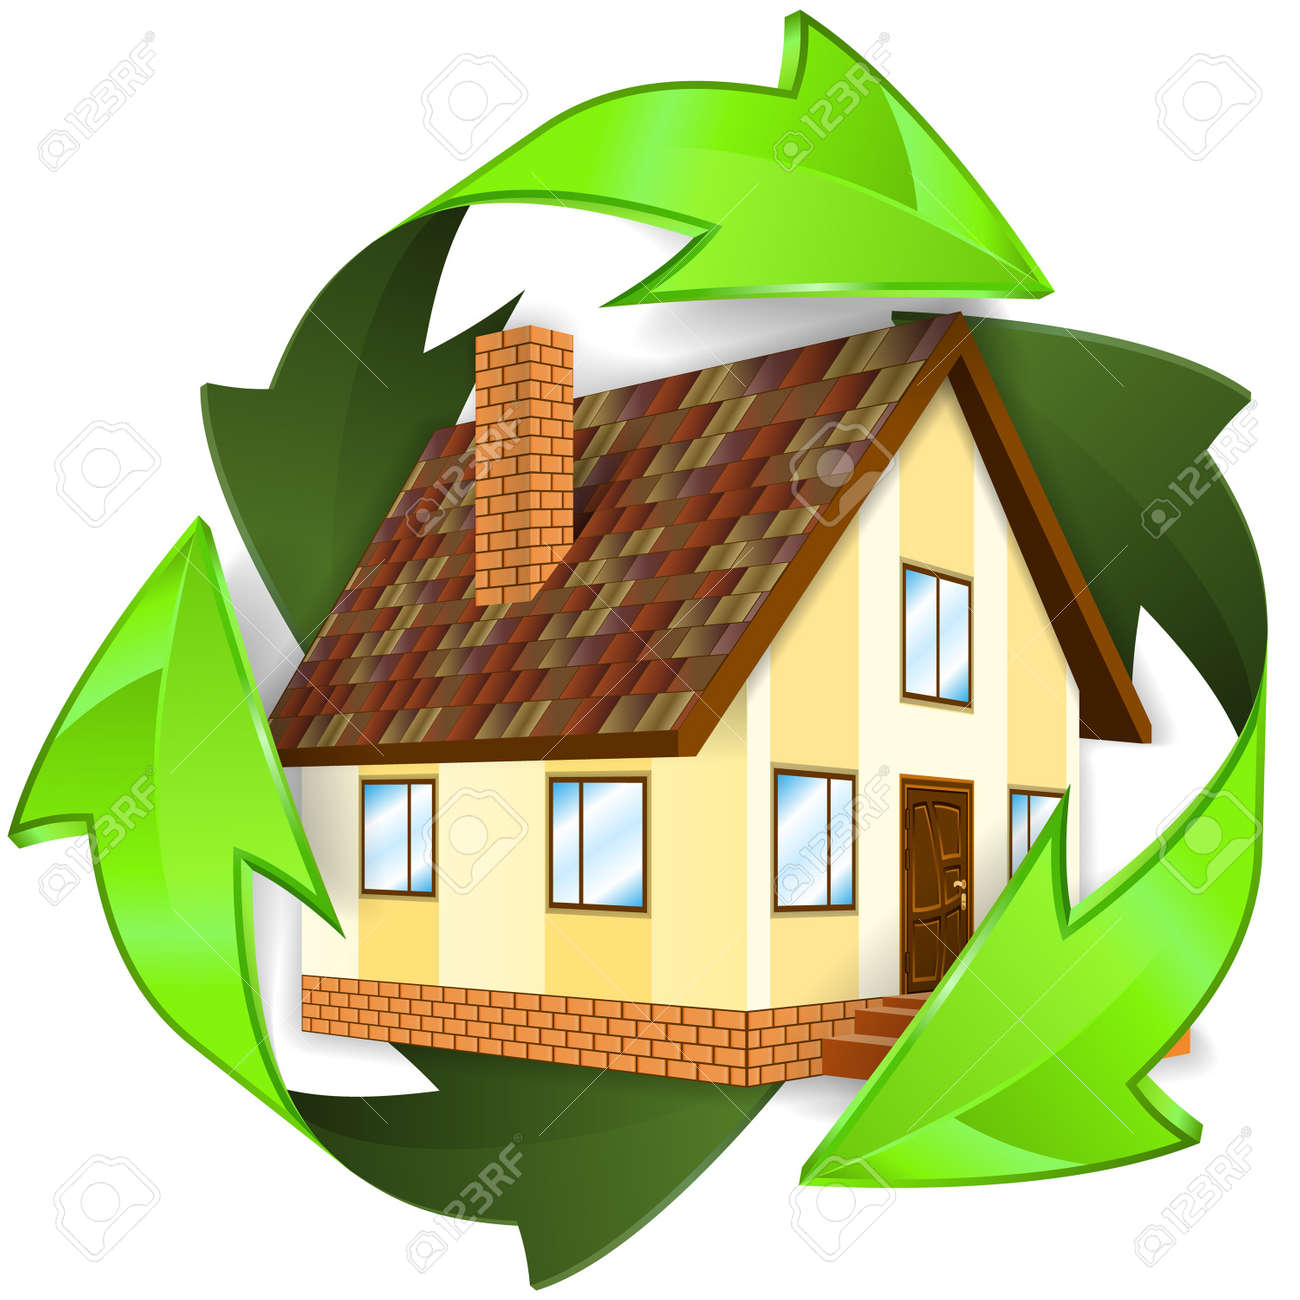 Environmental and Energy Saving Concept - House icon in Recycling Symbol, isolated on white background, vector illustration Stock Vector - 16424597